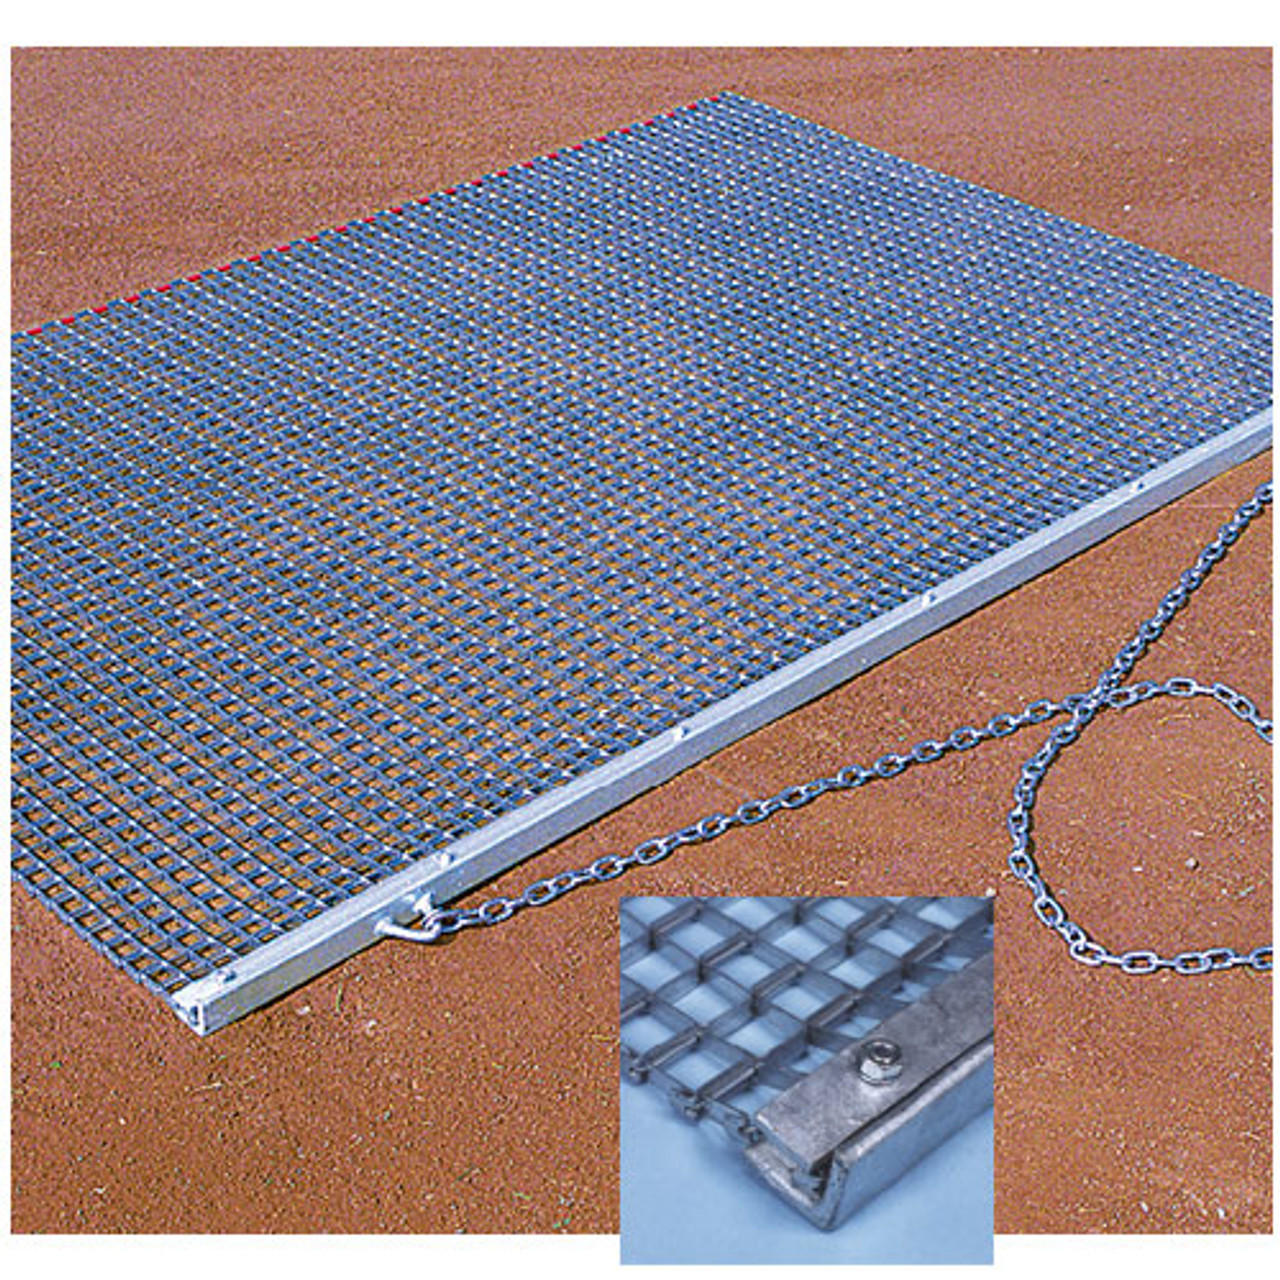 Baseball infield heavy duty drag mat